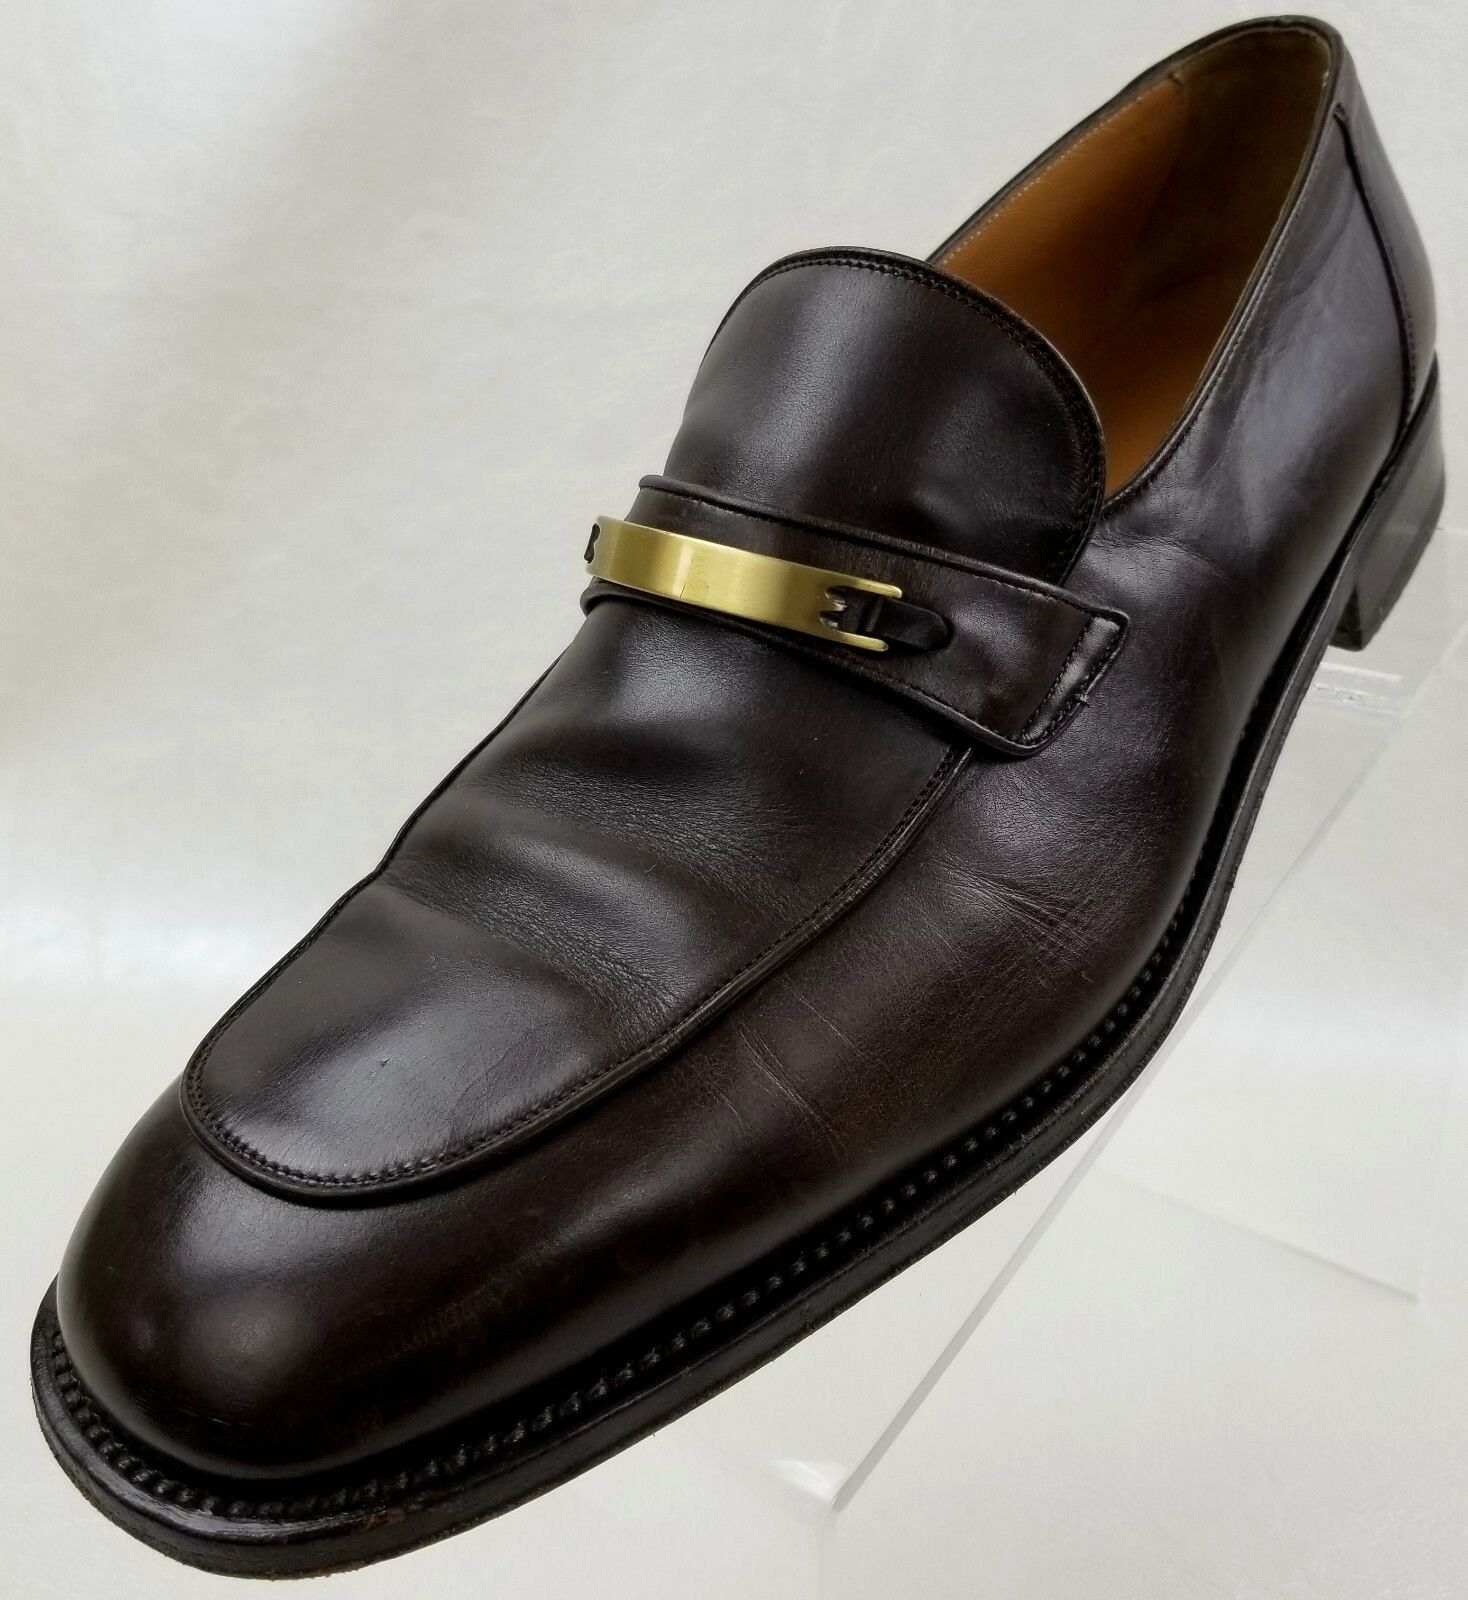 Bally Orvieto Loafers Apron Toe Mens Brown Leather Slip On Mens Toe Shoes Size 11.5 6b6f46